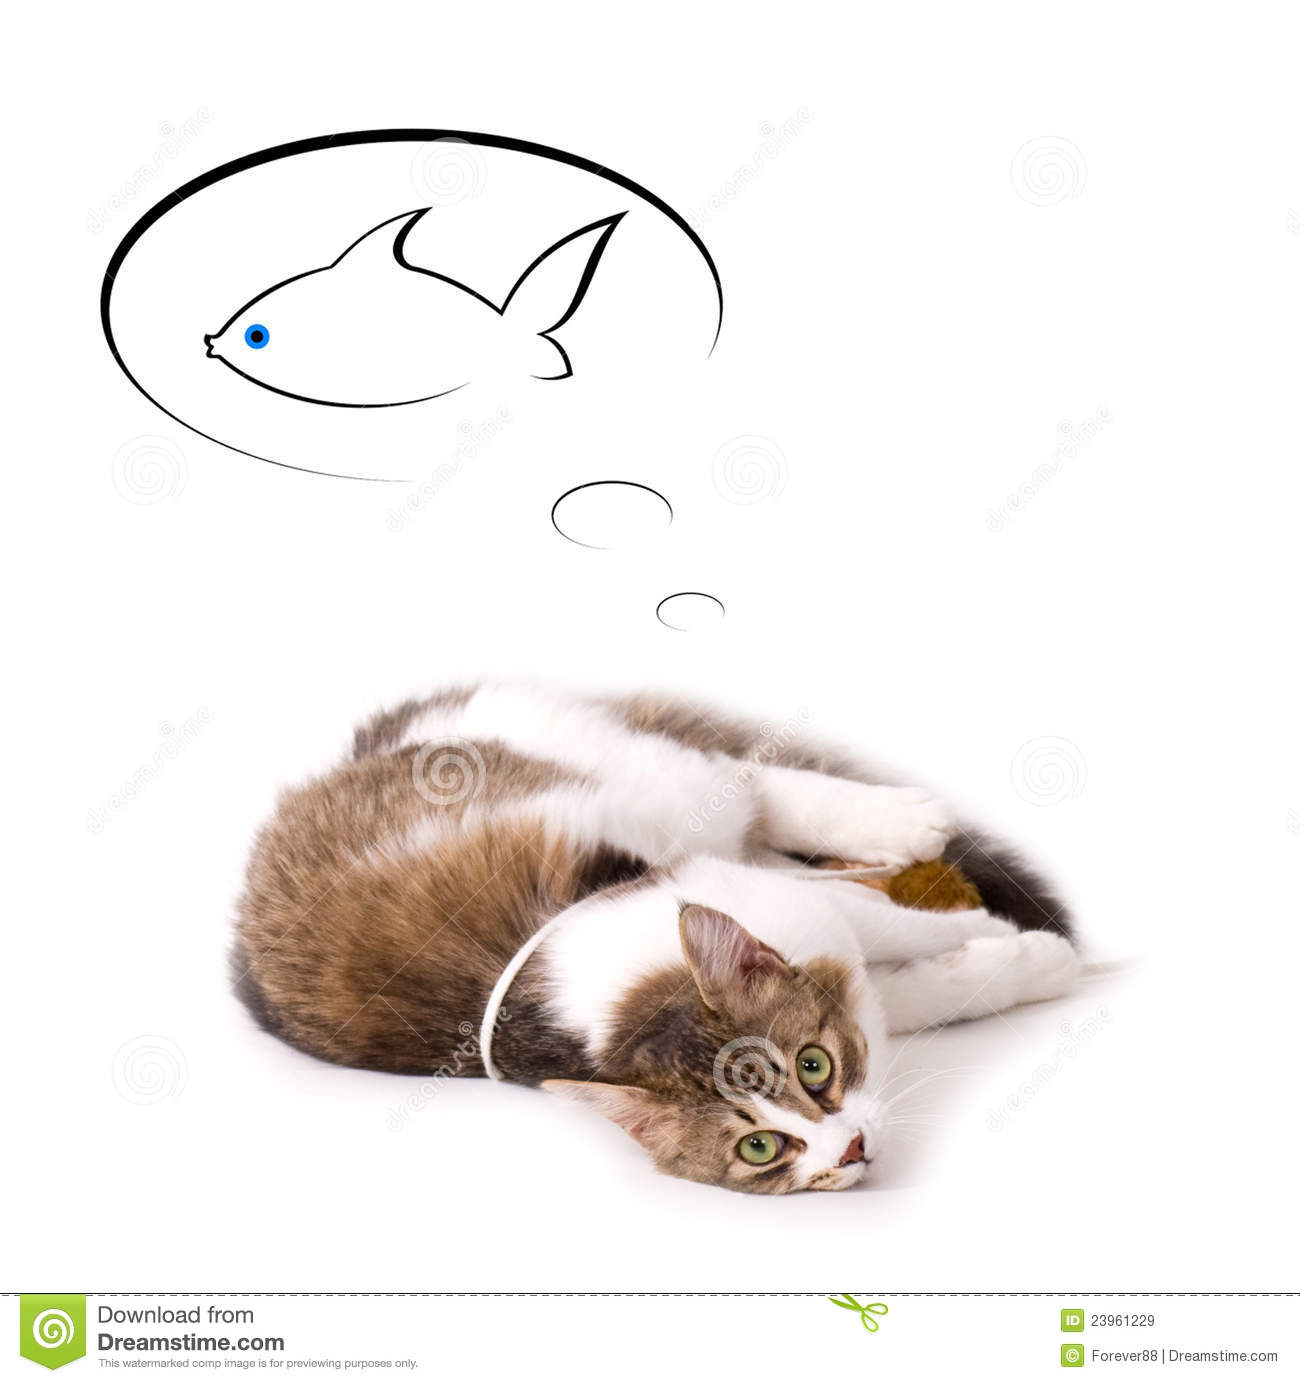 Cat dream about fish royalty free stock images image for Dream about fish